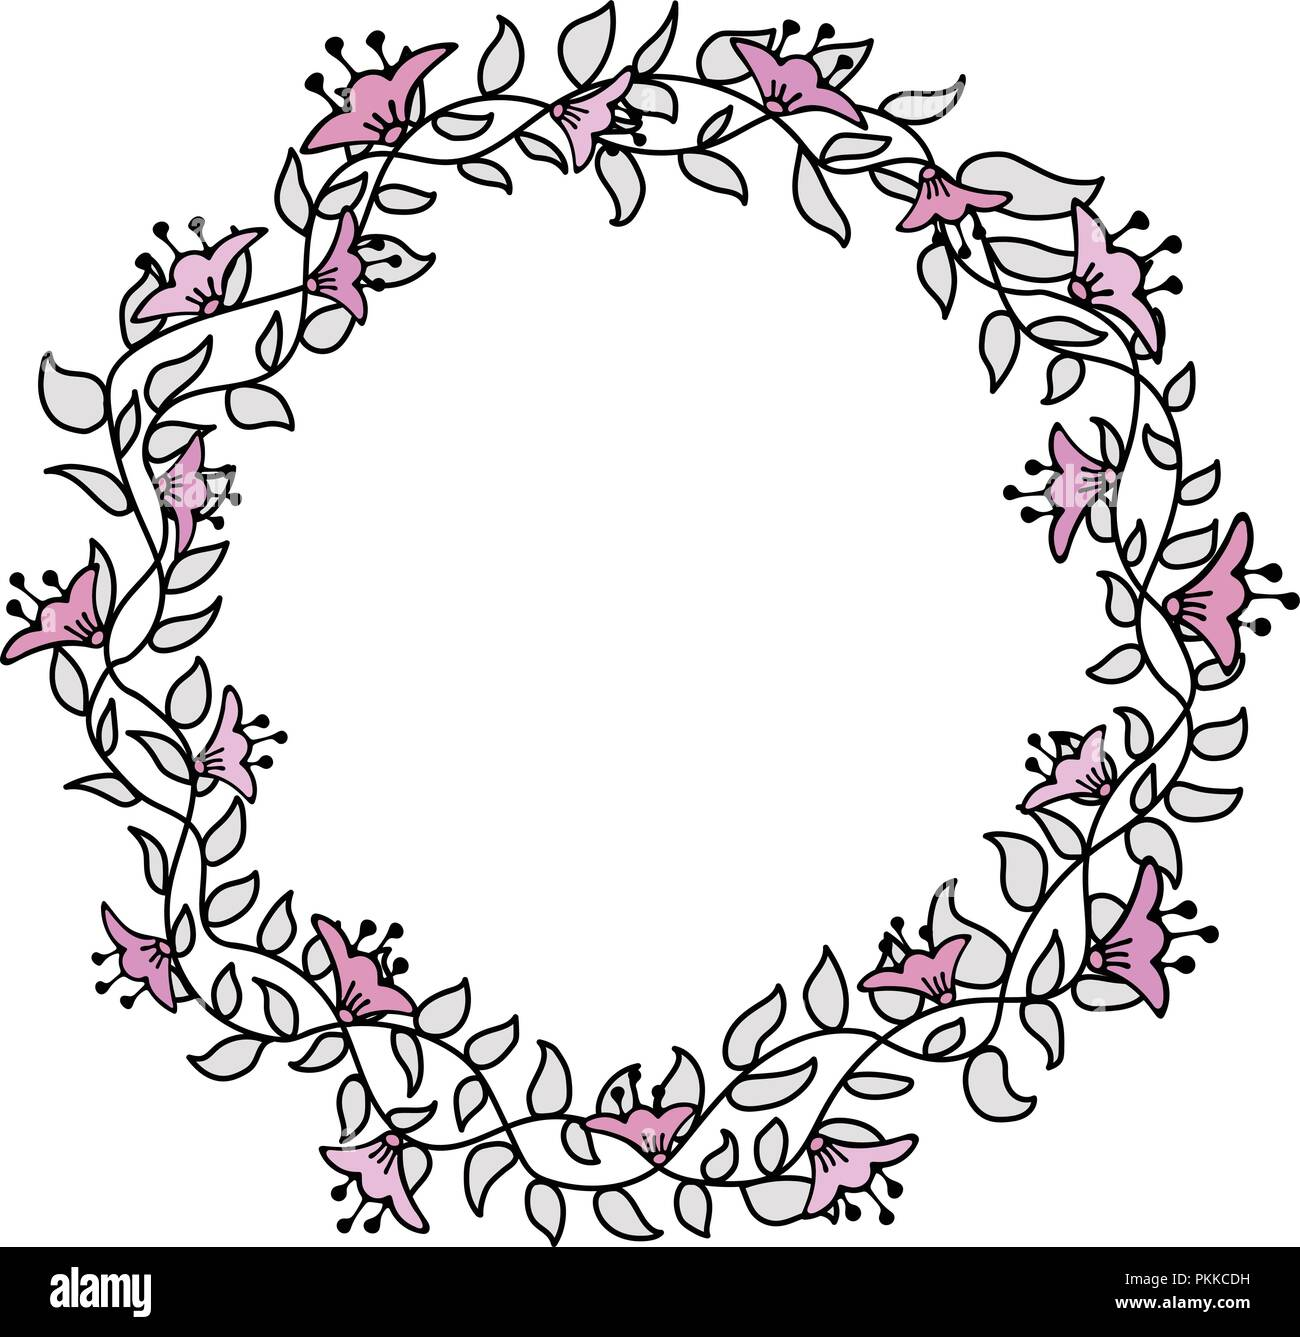 Flower hand-drawn gentle frame on a white background. Save the date. - Stock Vector